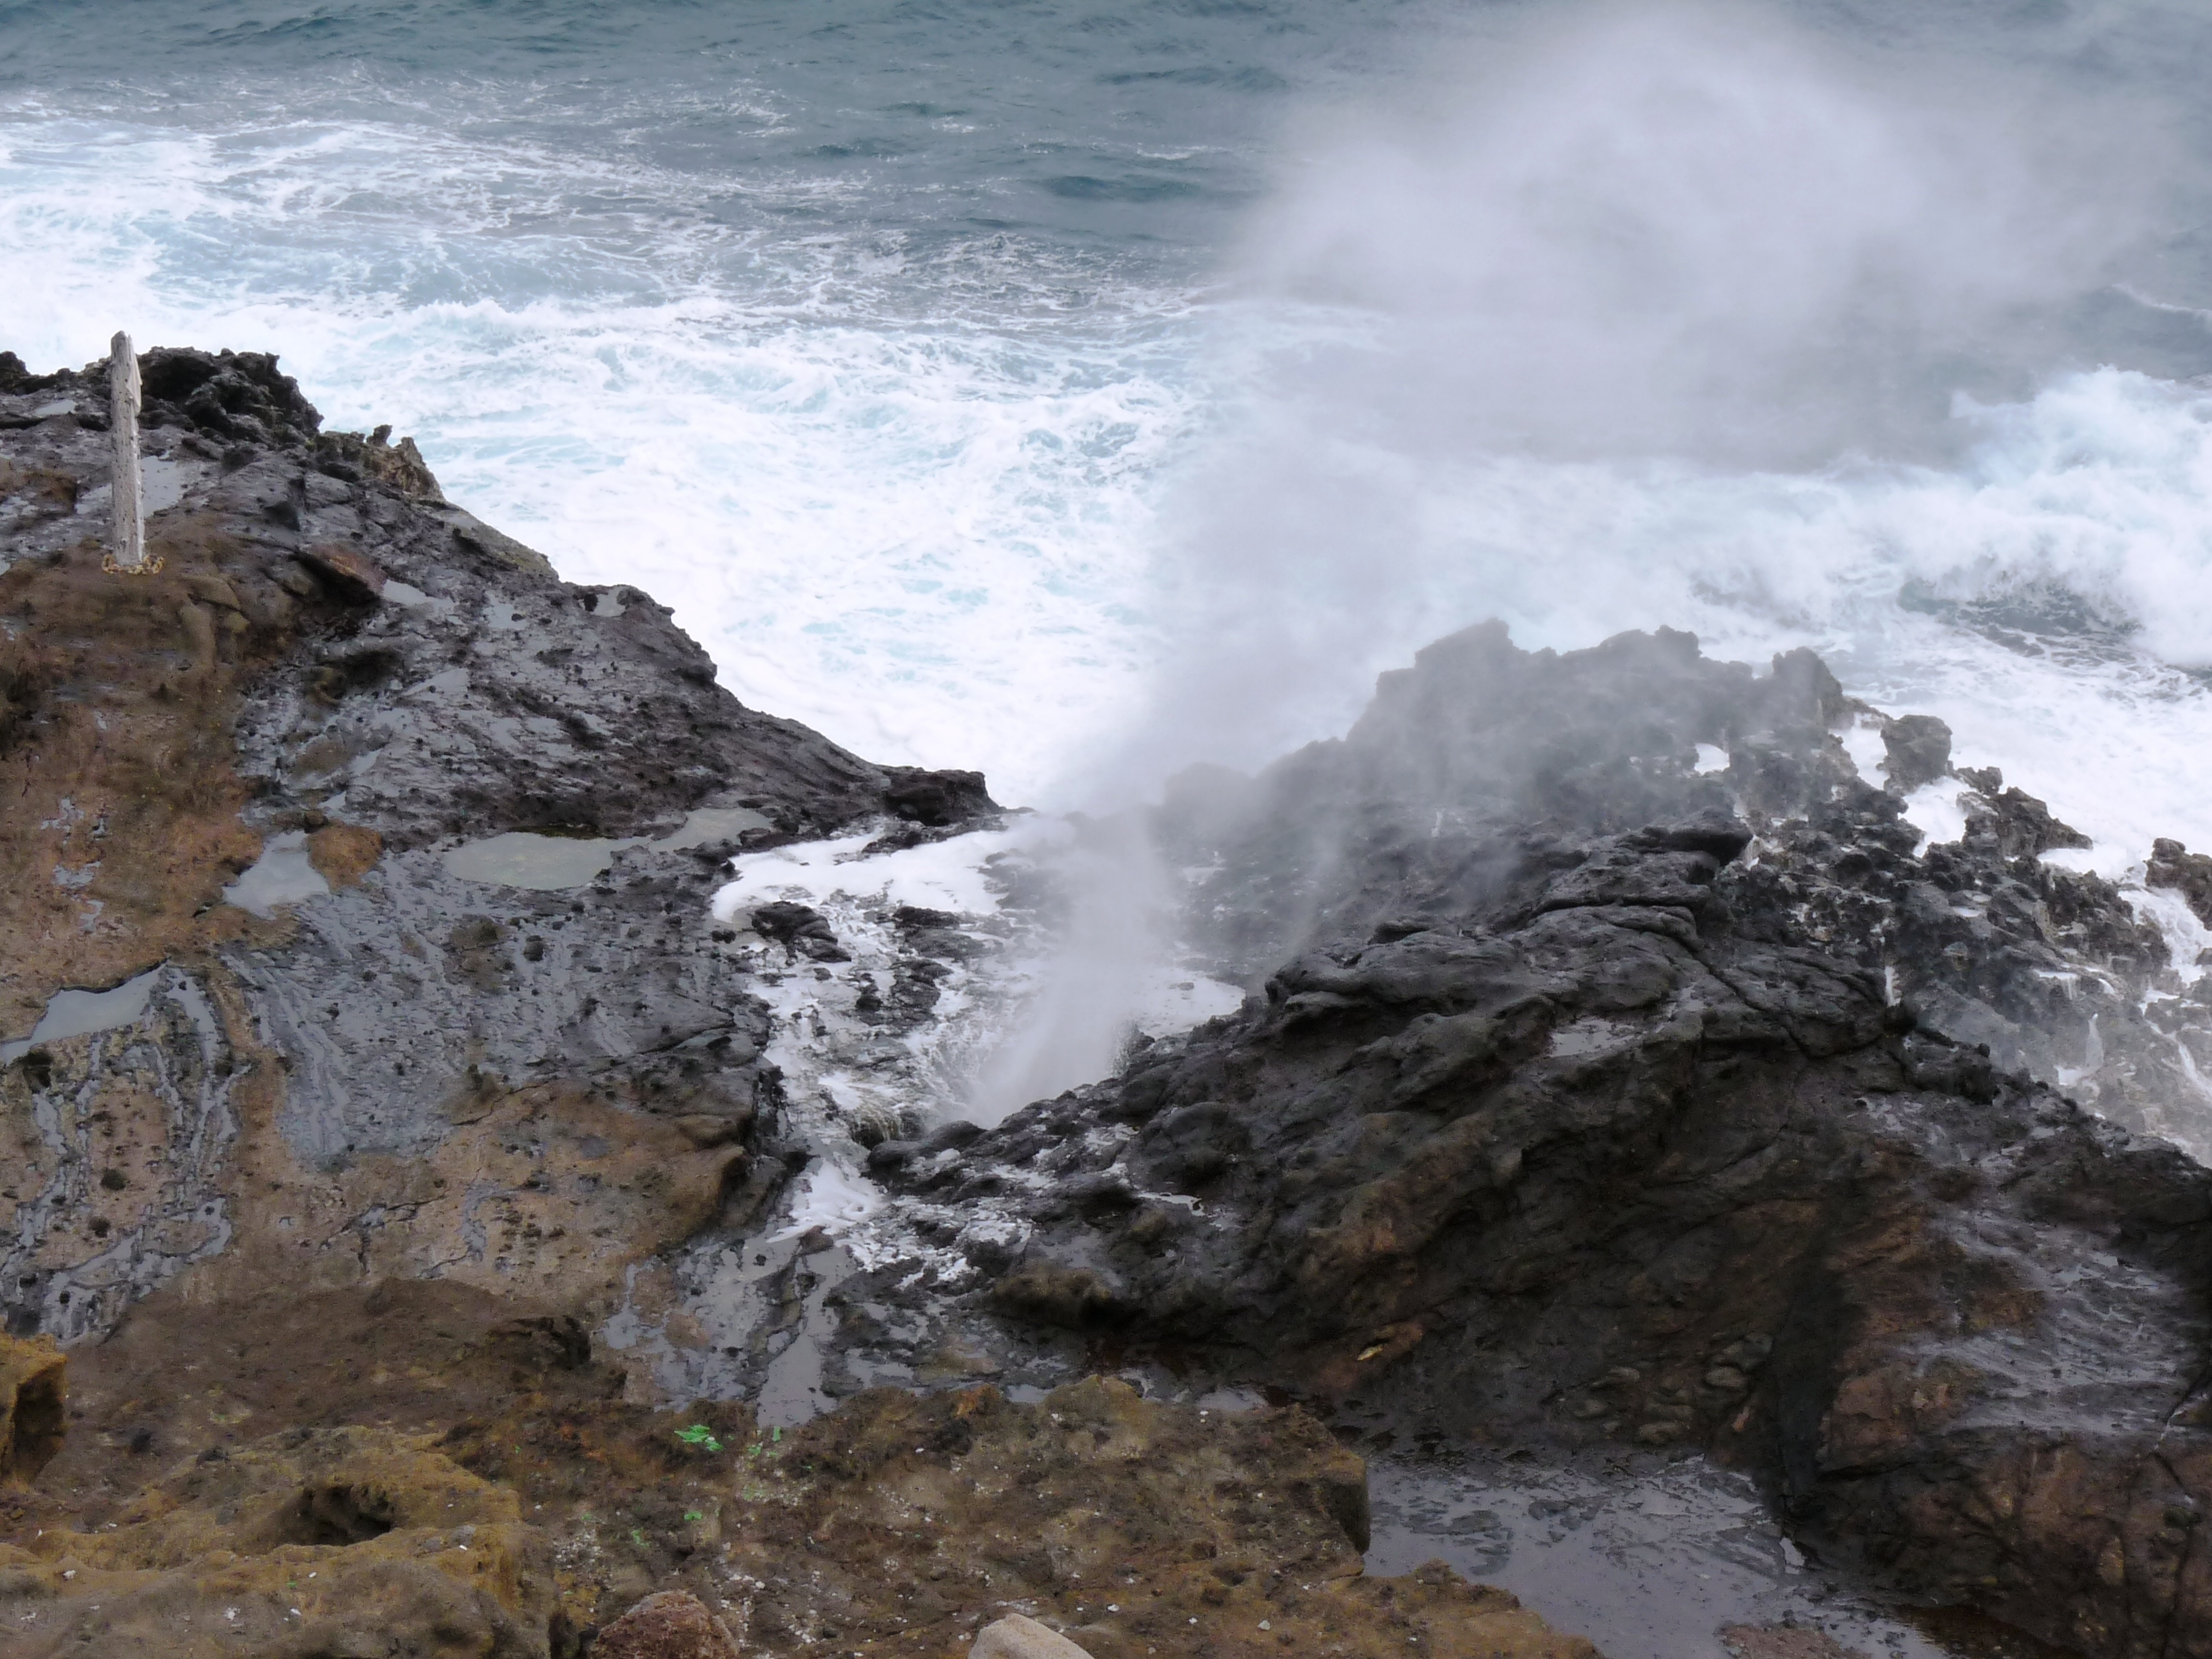 formation of oahu Hawaii is a very unique place on earth this is due to the fact that it is located right on the top of a hot spot a hot spot is a place where hot molten rock is pushed to the surface of the earth and causes volcanic activity this is what led to the creation of hawaii hawaii has literally emerged from the seas.